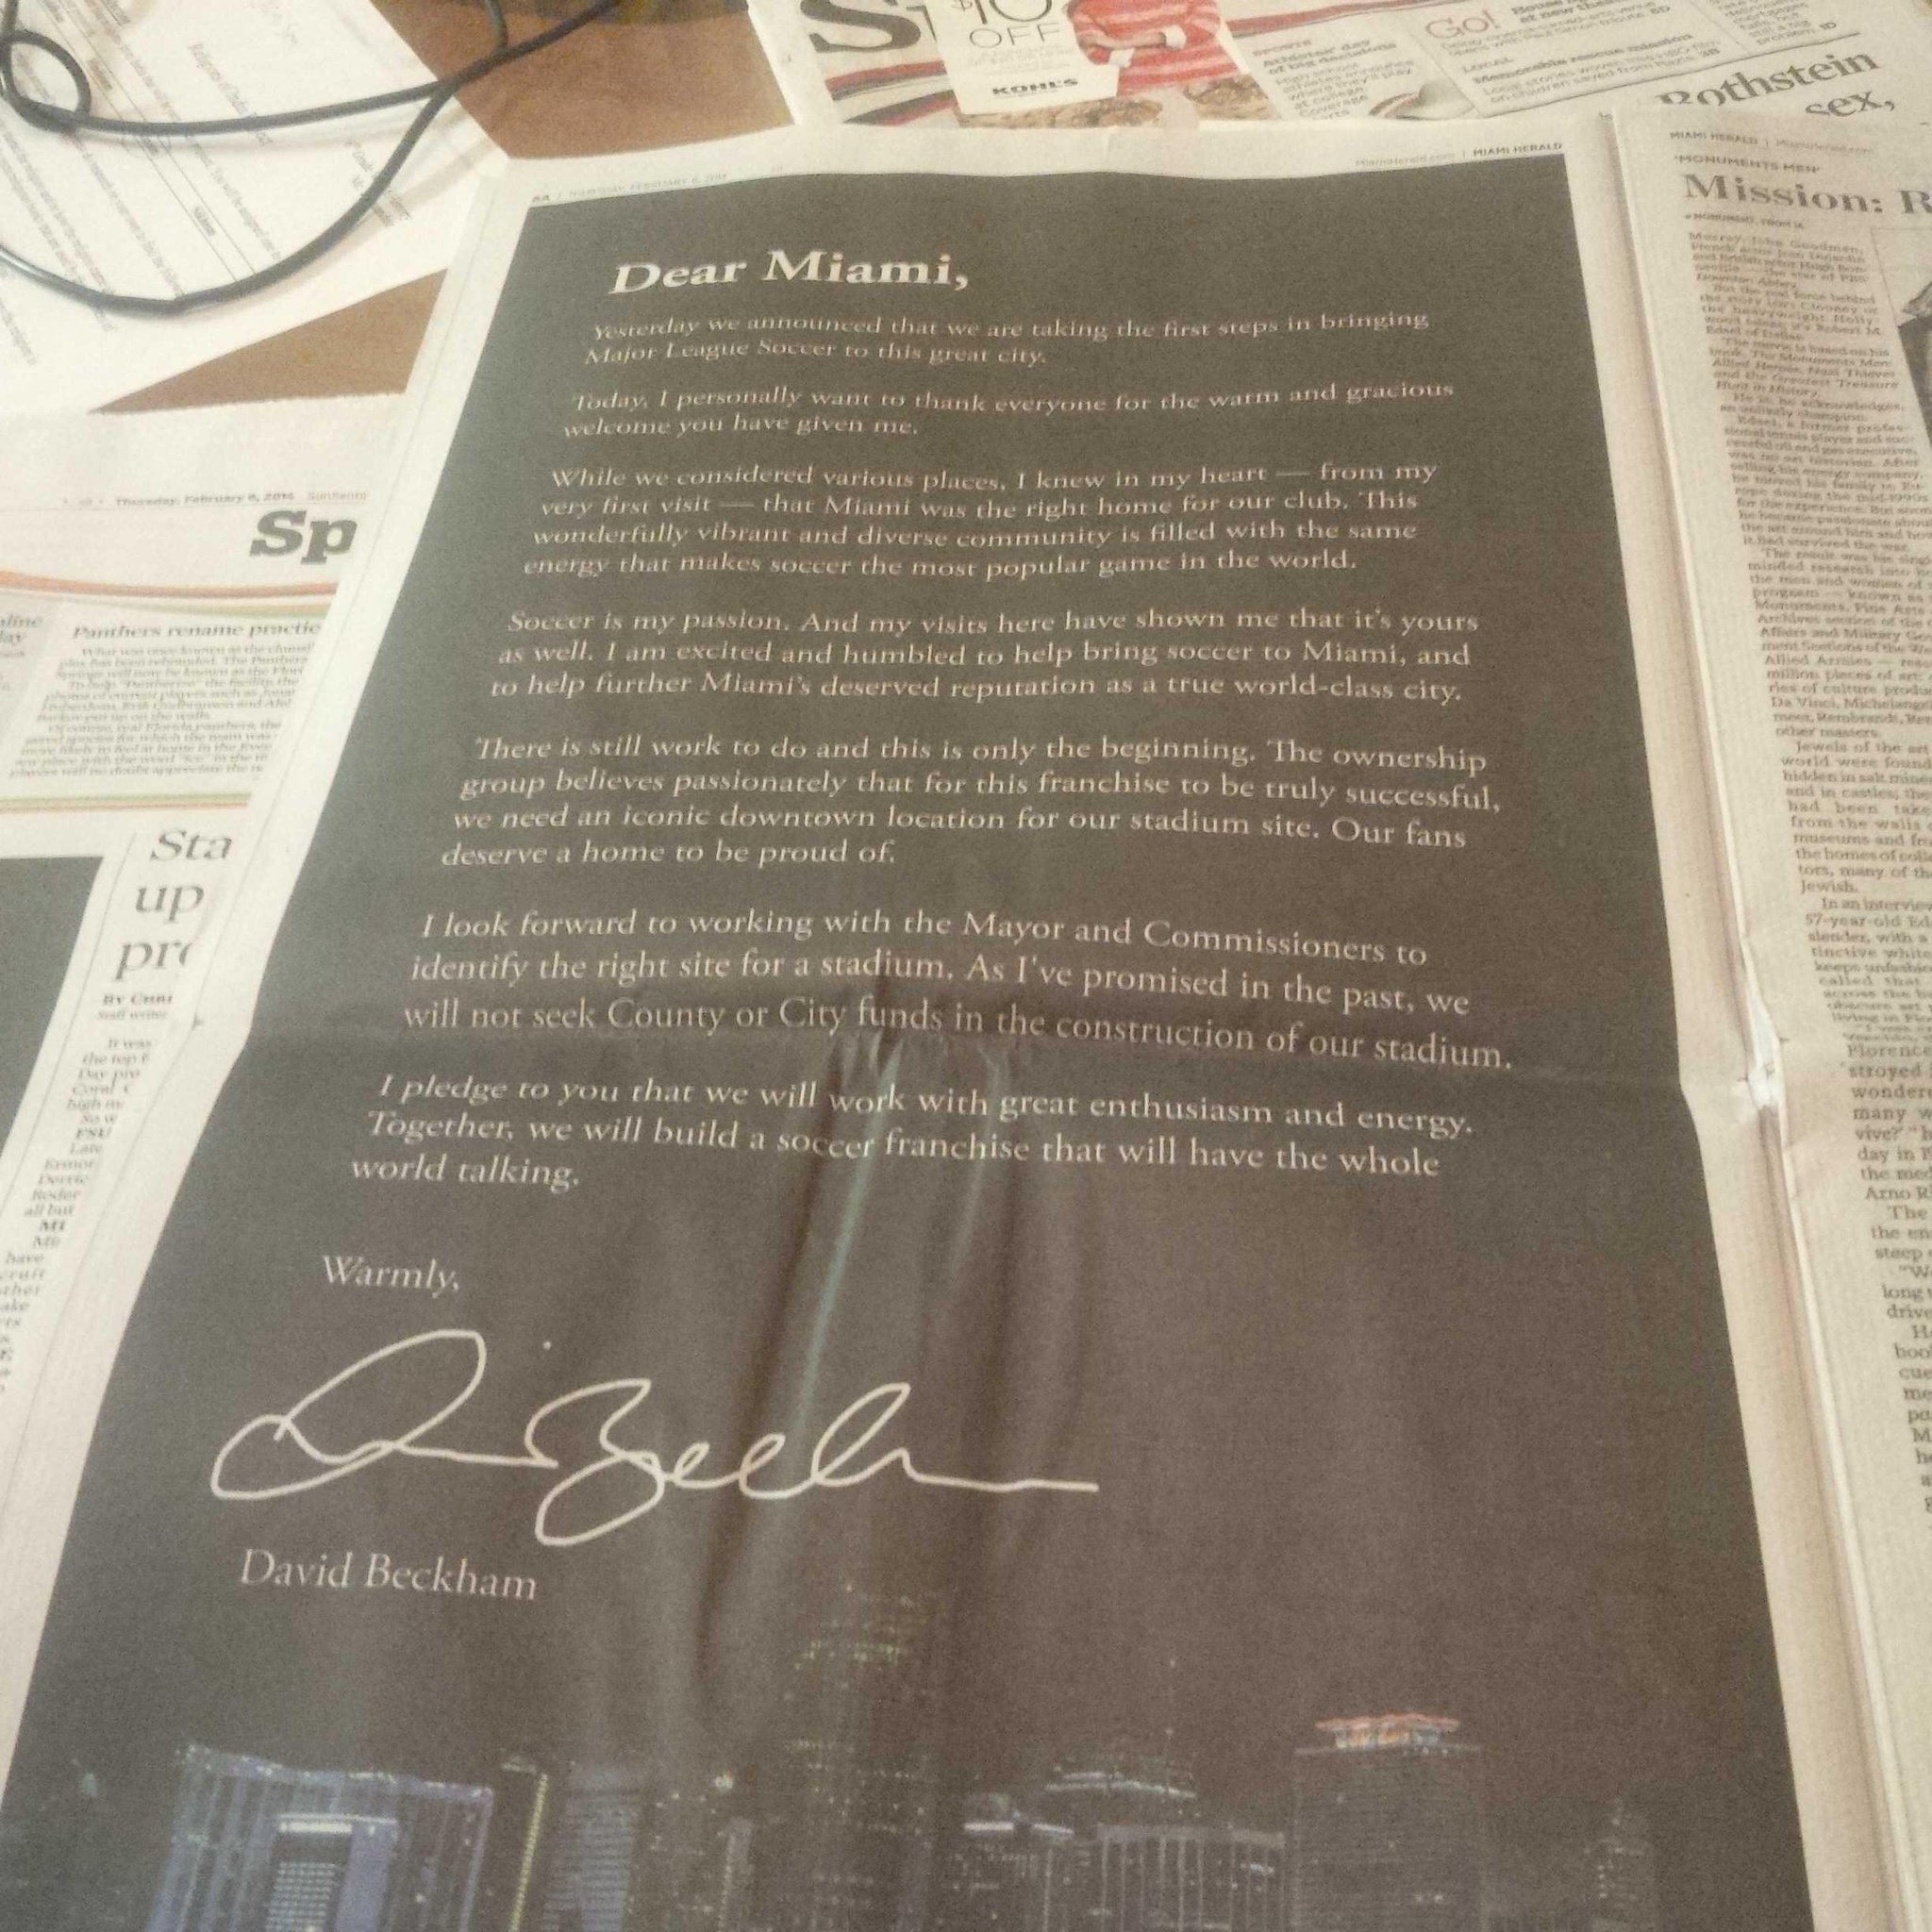 David Beckham gets another PR win writing a full page letter in a Miami paper [Picture]